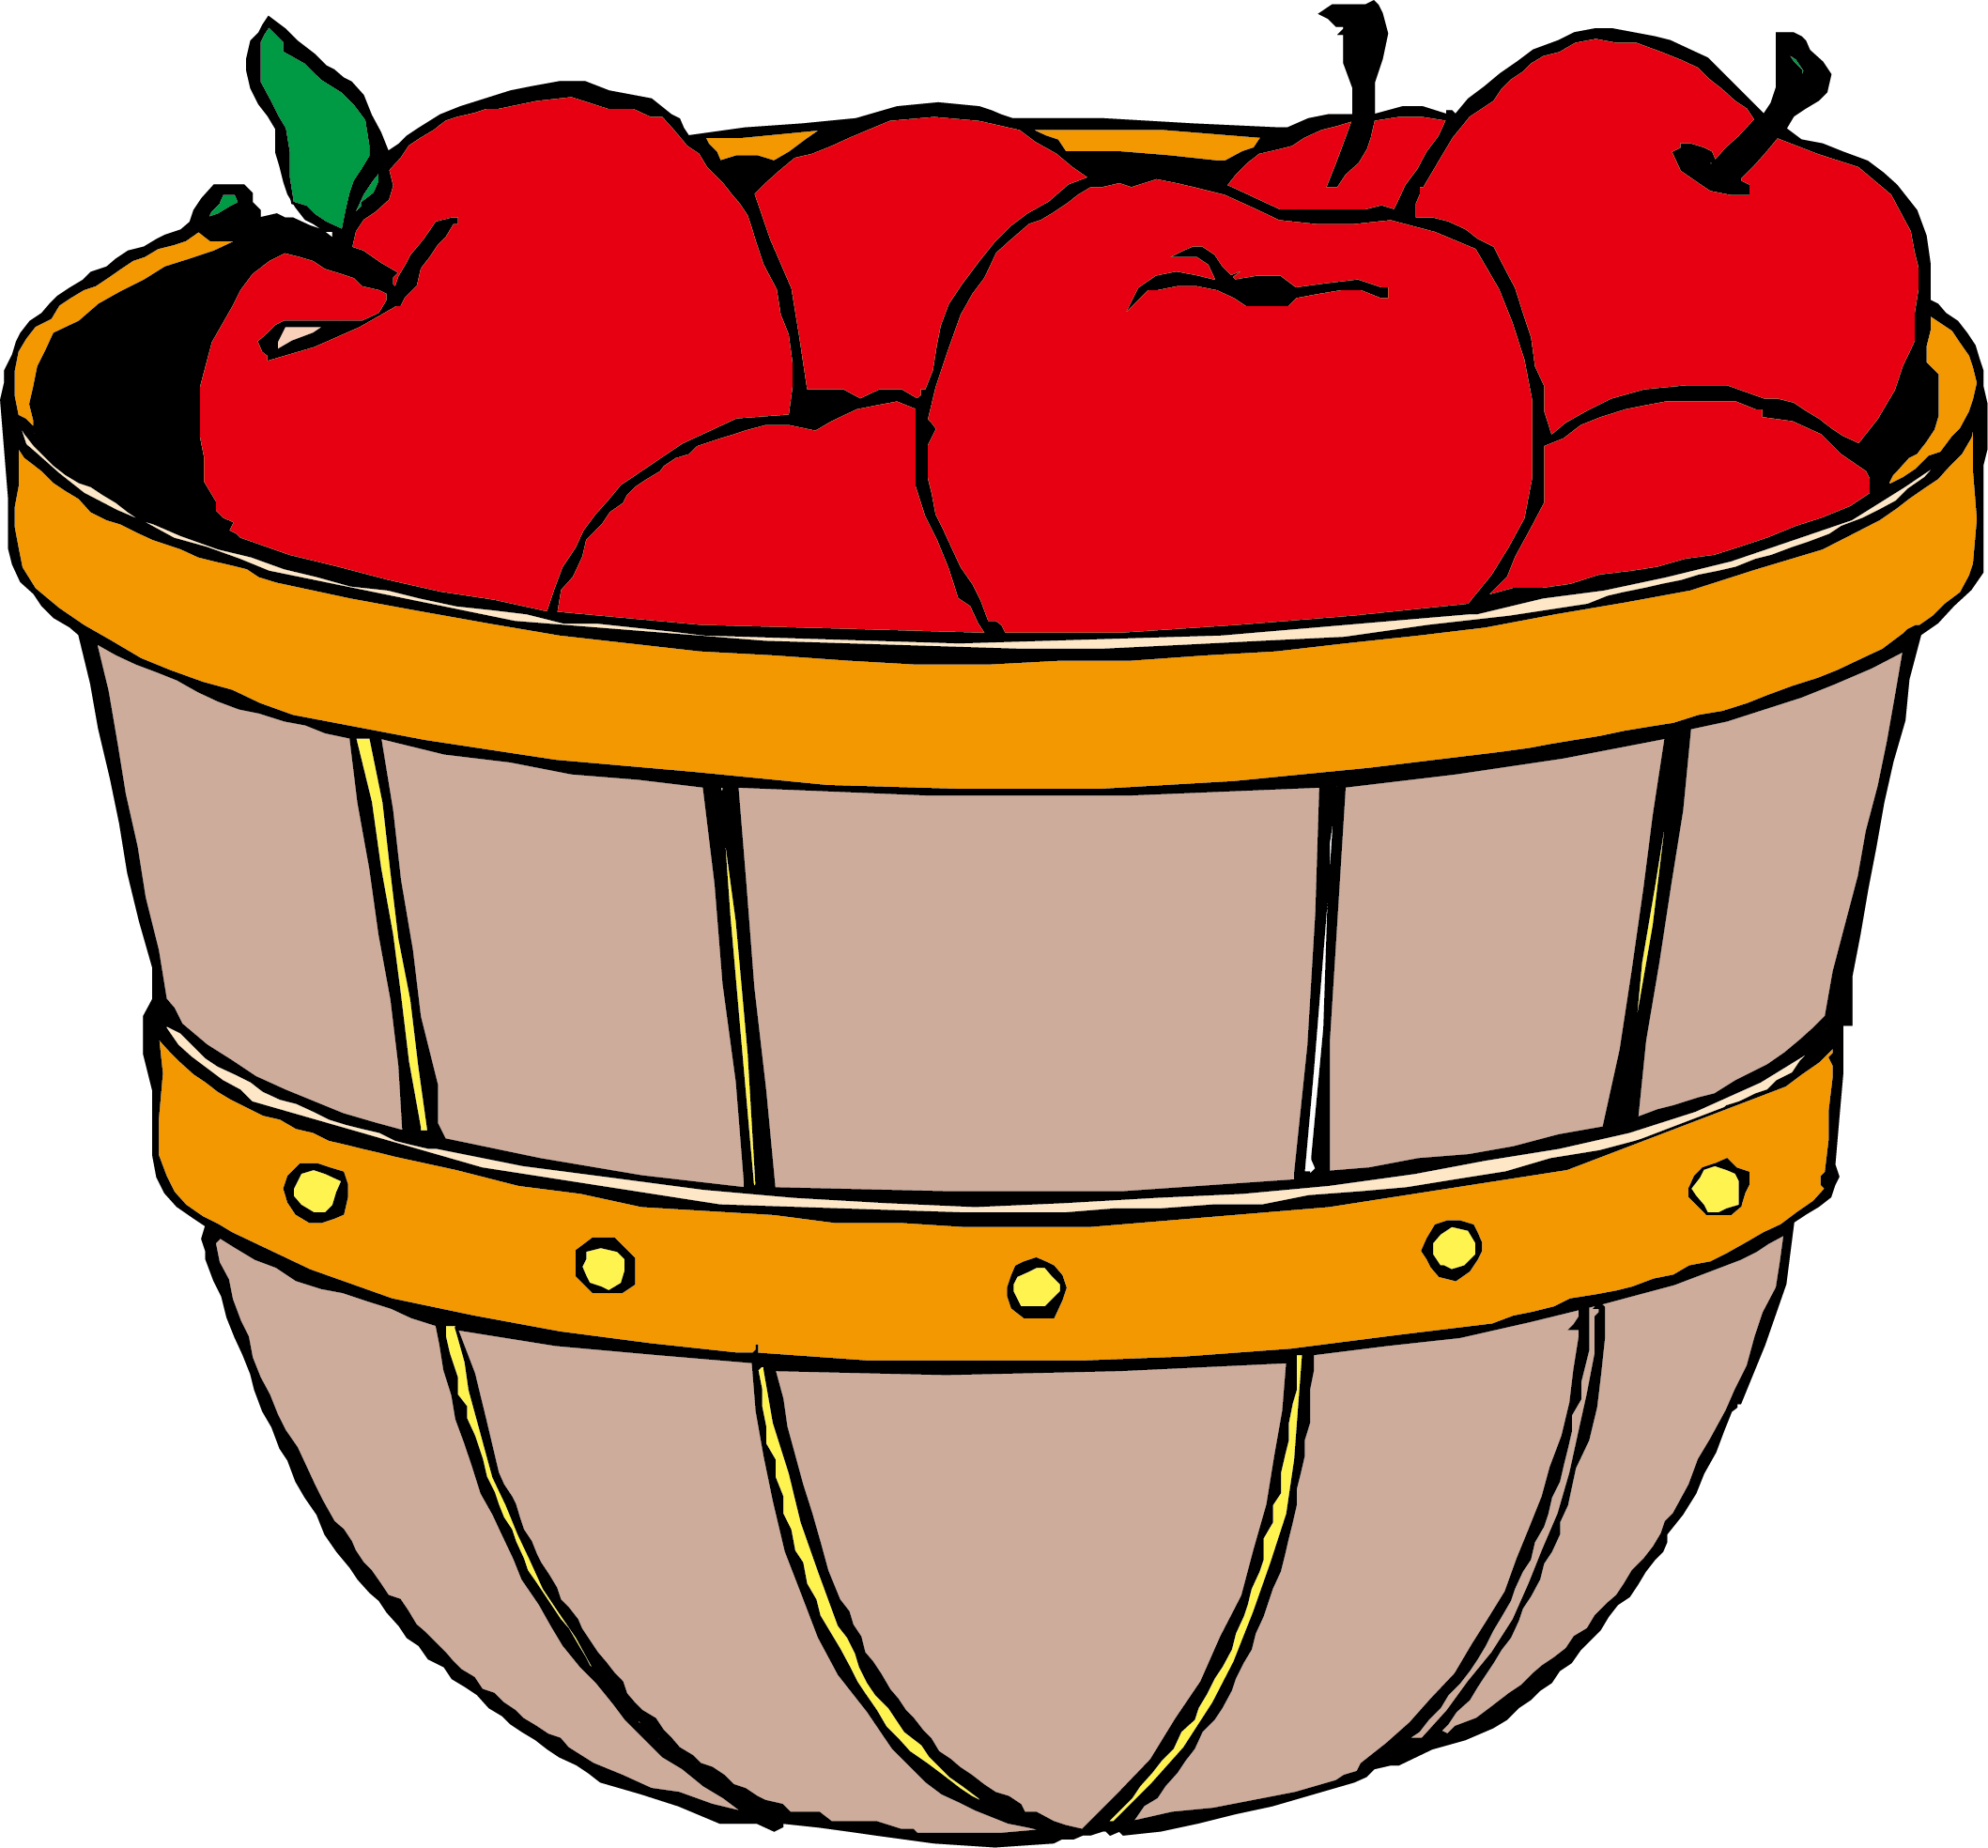 banner library Drawing storage food. Apple oka orchard full